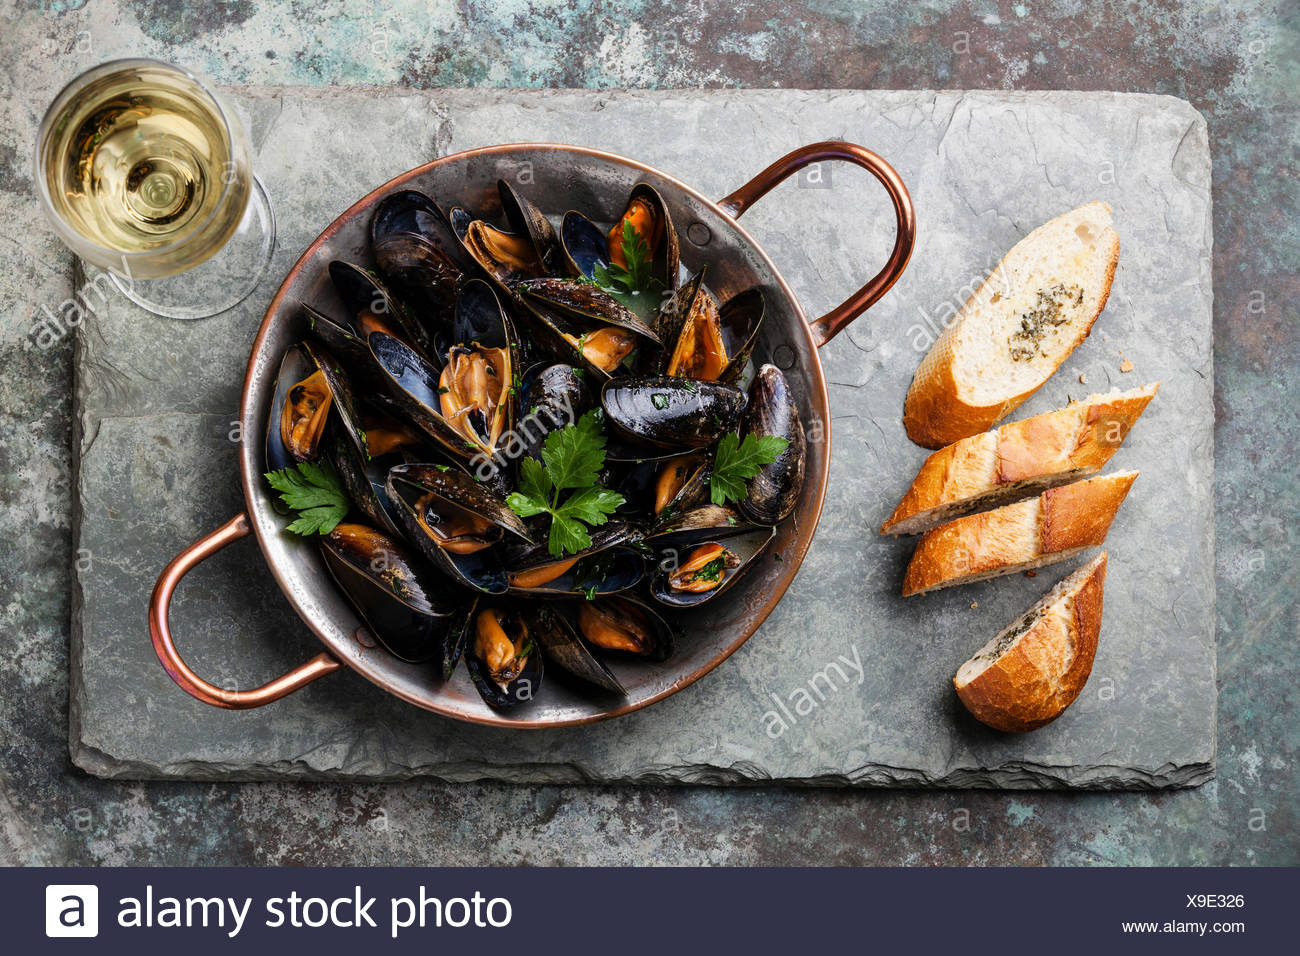 Mussels in copper cooking dish and French Baguette with herbs on stone slate background Stock Photo